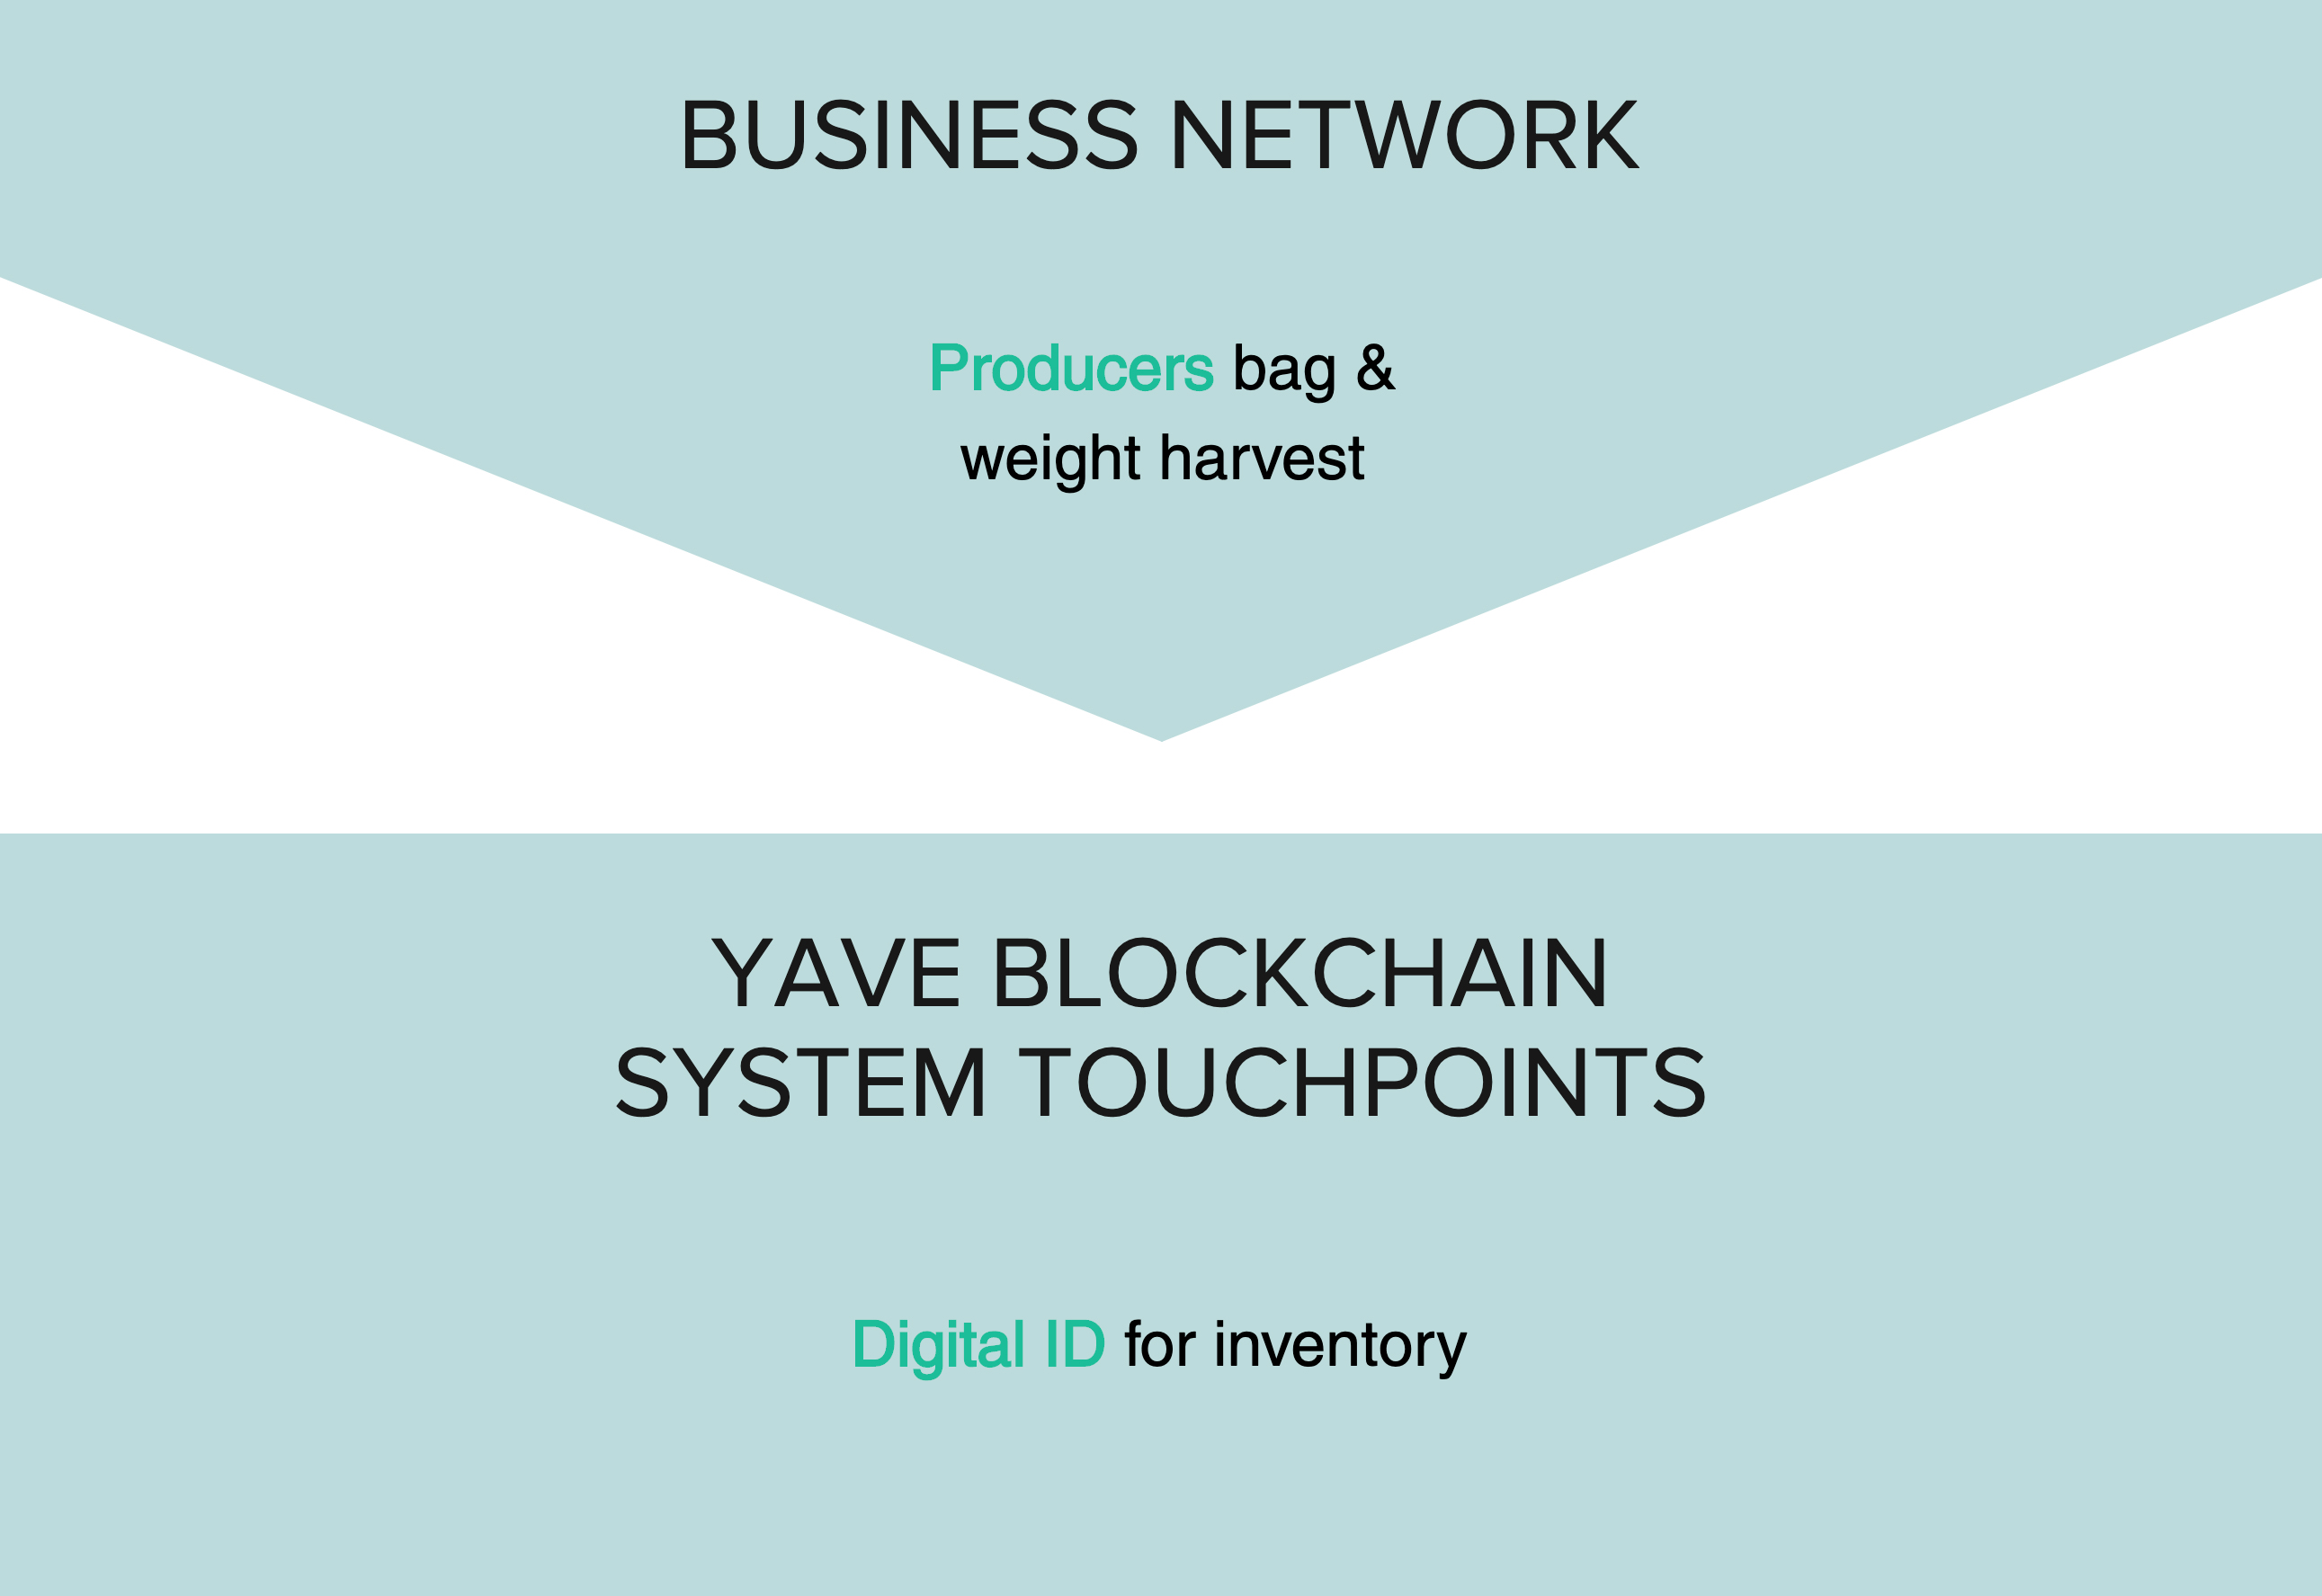 Business Network: Producers bag and weigh harvest > Yave Blockchain System Touchpoints: Digital ID for inventory